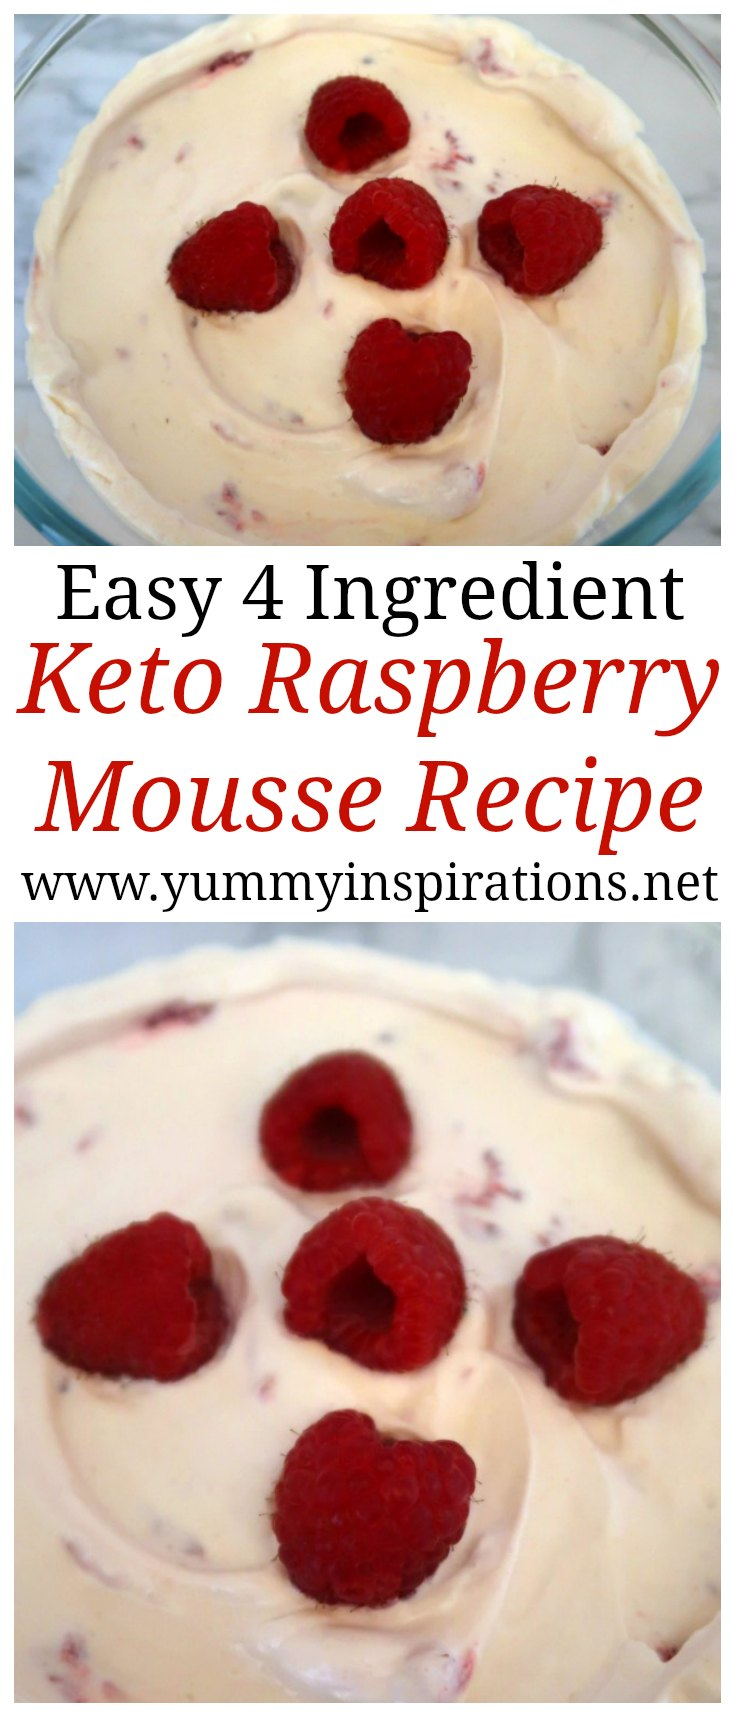 keto raspberry mousse recipe easy low carb dessert recipes. Black Bedroom Furniture Sets. Home Design Ideas